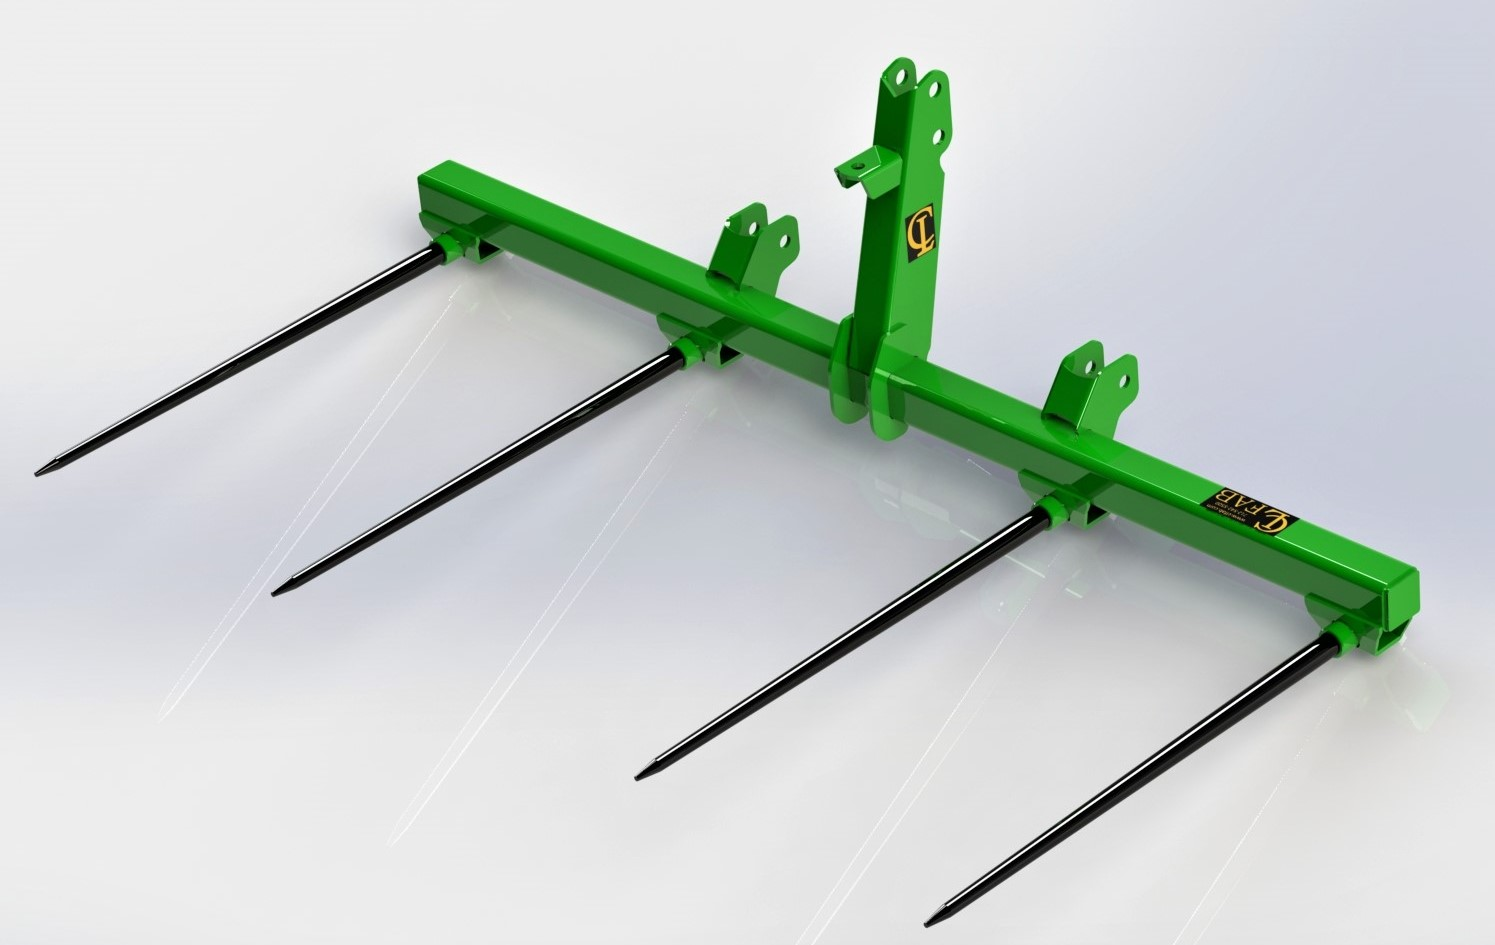 Bale Spear 3 Point | Bale Spears Attachments